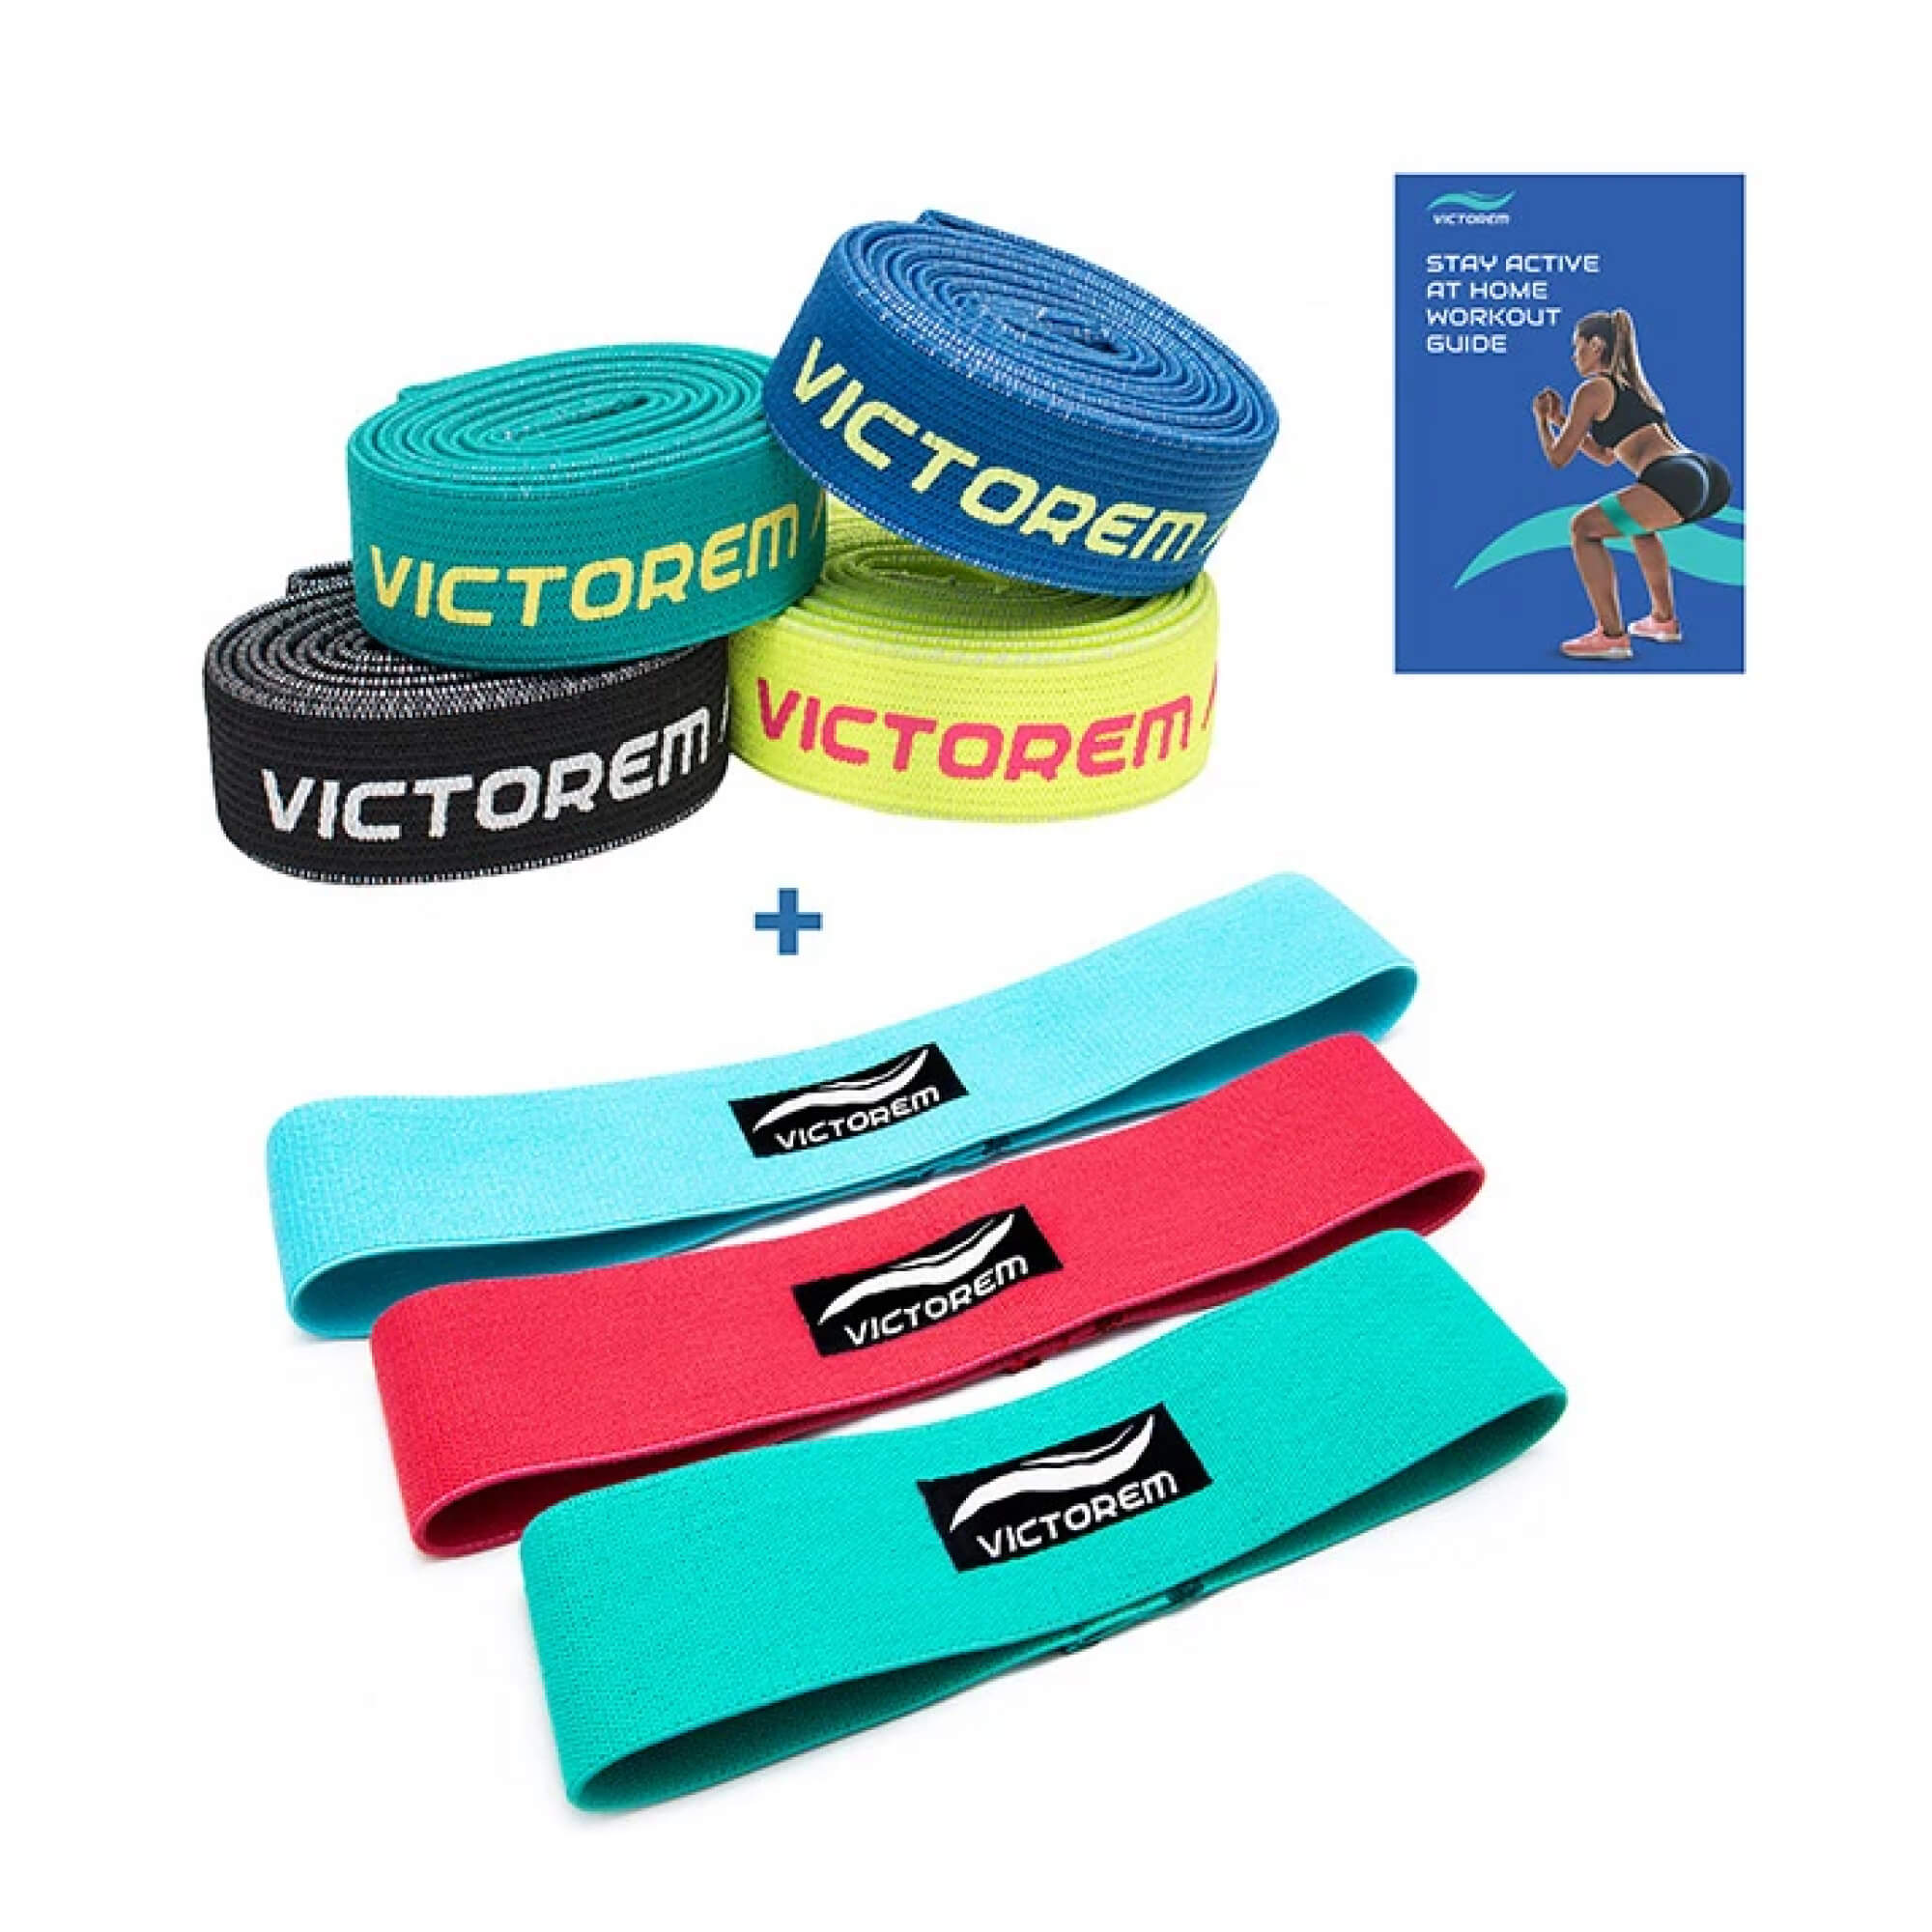 Stay Active at Home Bundle